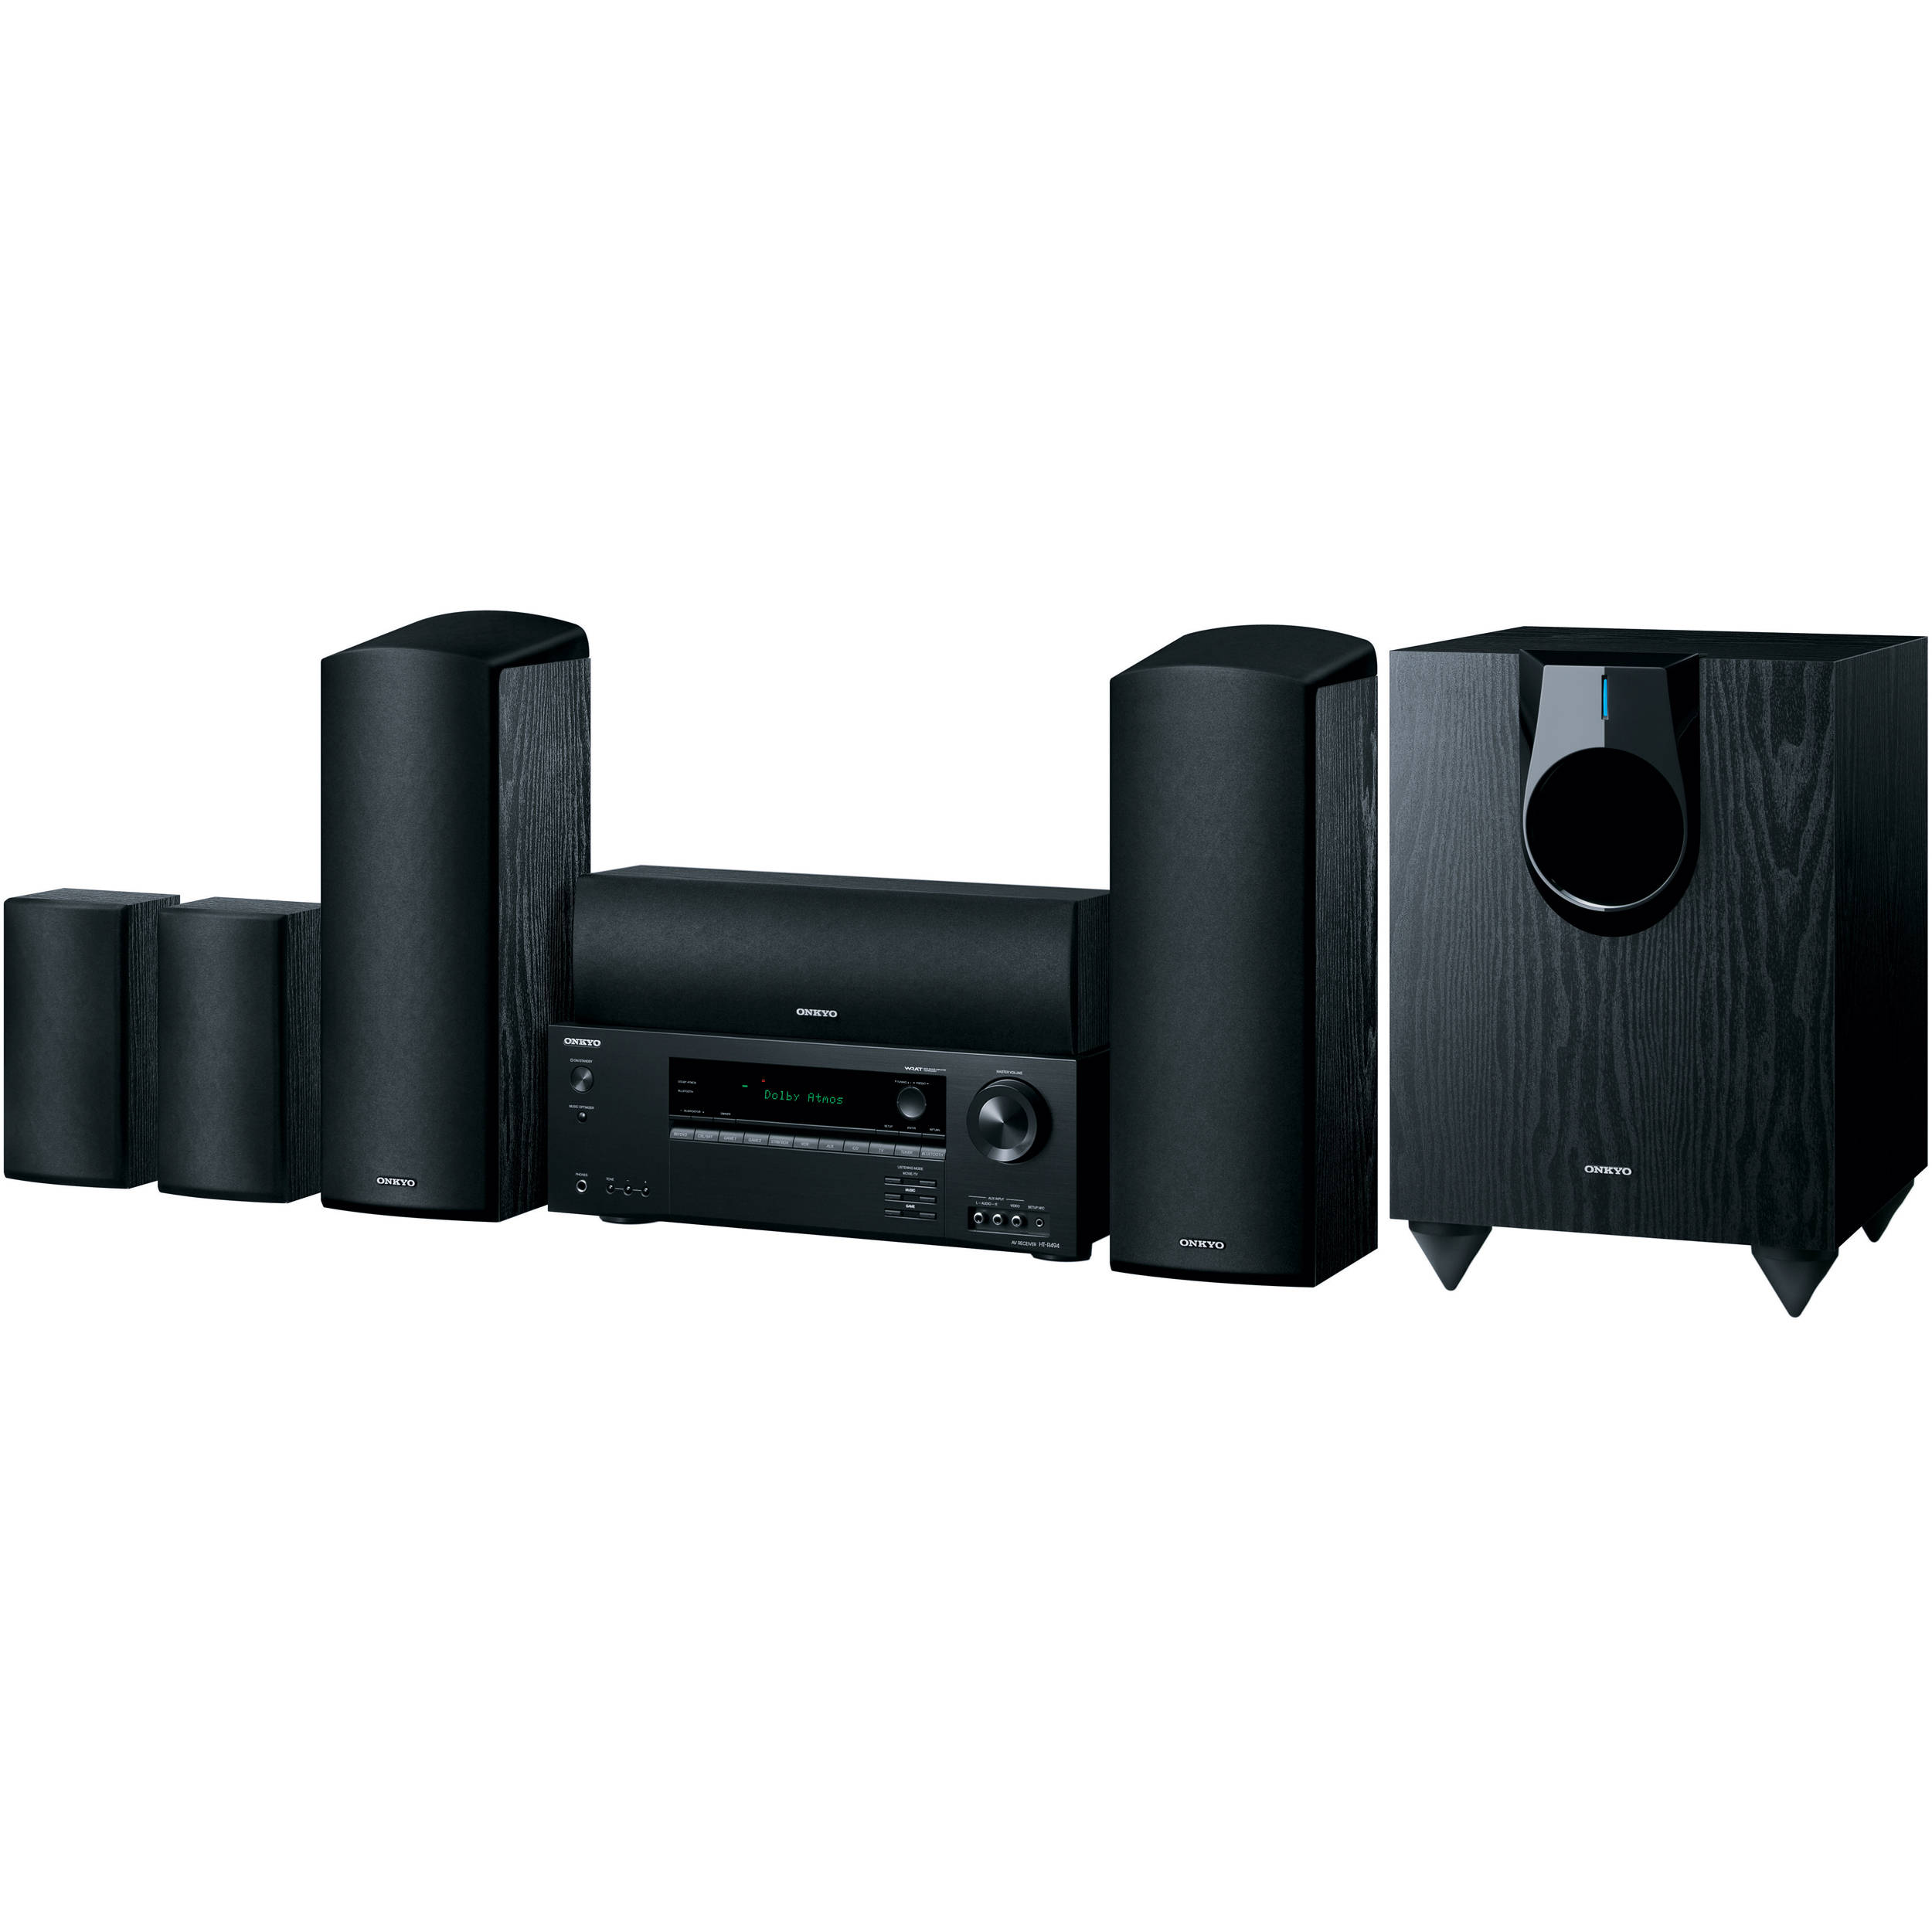 onkyo ht s5800 5 1 2 channel home theater system ht s5800 b h. Black Bedroom Furniture Sets. Home Design Ideas